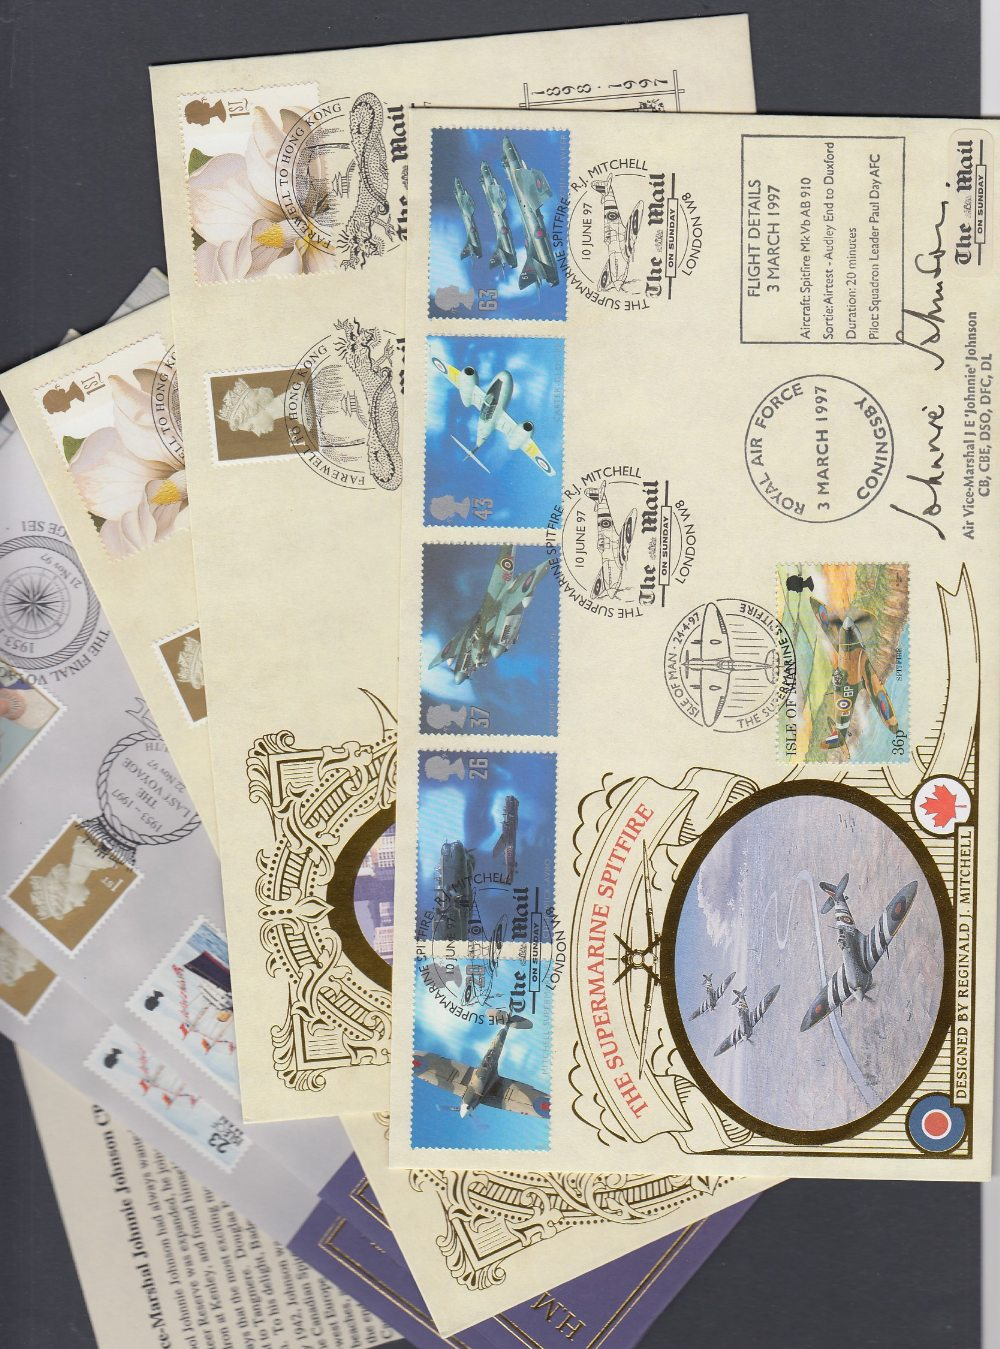 STAMPS FIRST DAY COVERS Small batch of Benham First Day Covers,